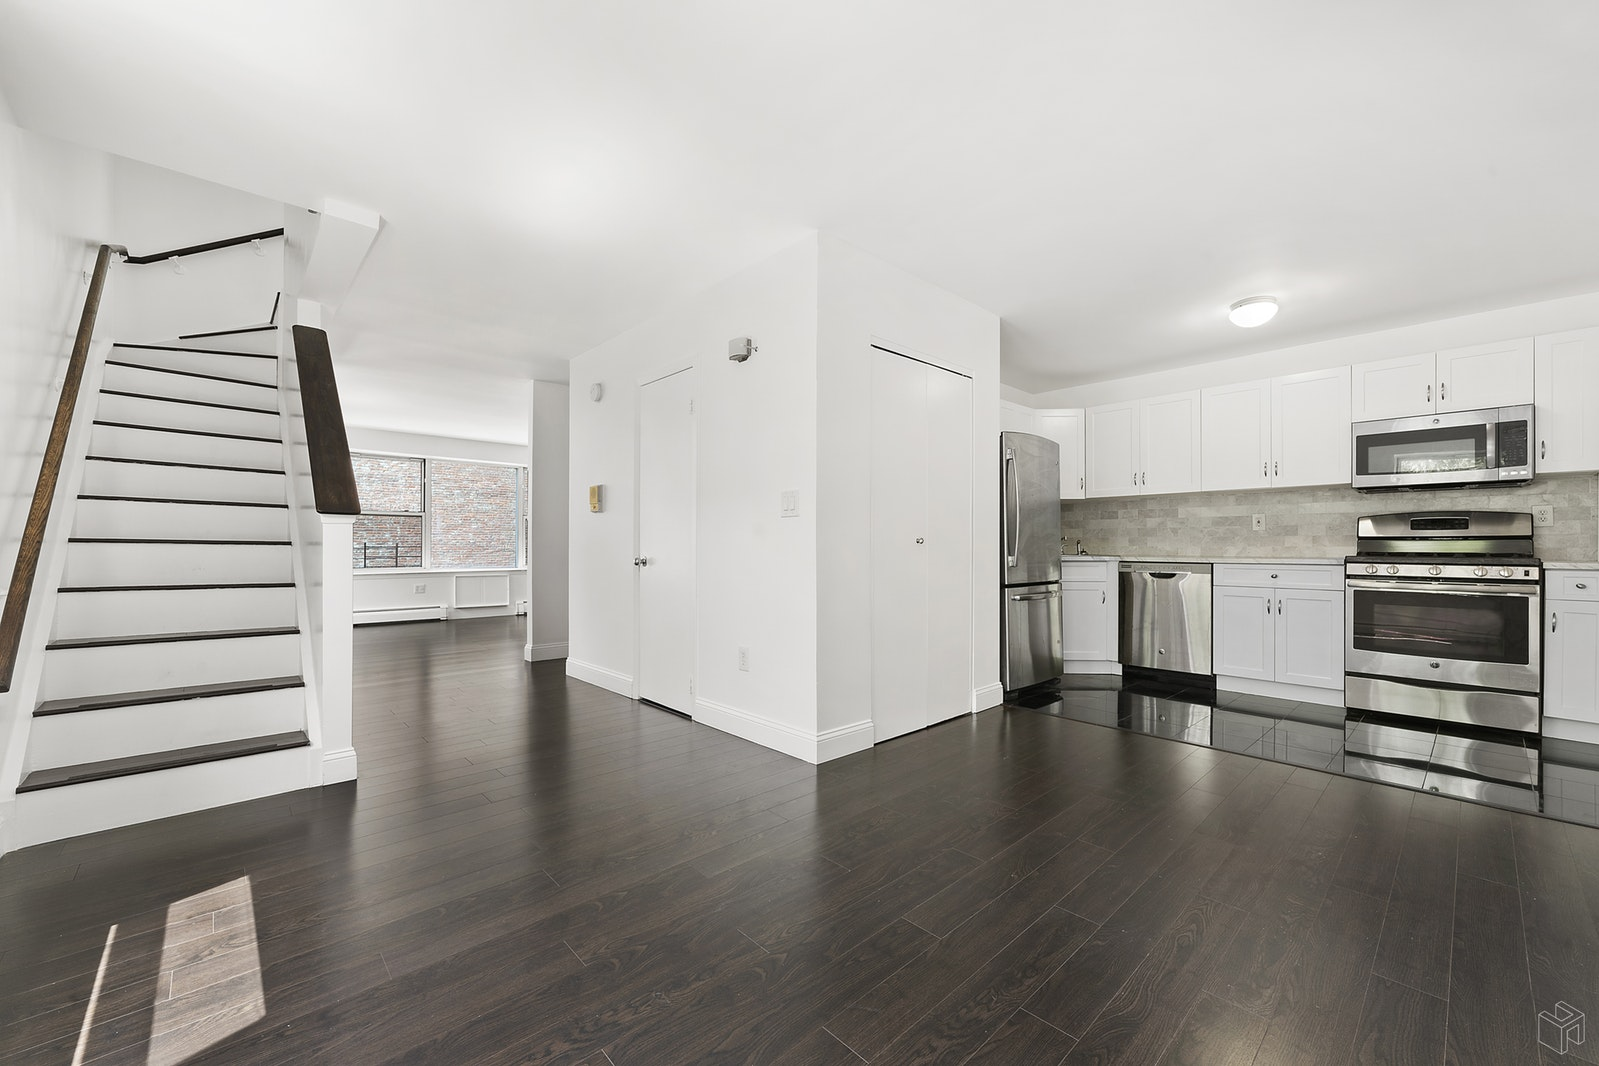 H-U-G-E 3 Br W/ Ultra Low CC'S & Taxes, Upper Manhattan, NYC, 10030, $1,249,000, Property For Sale, Halstead Real Estate, Photo 2